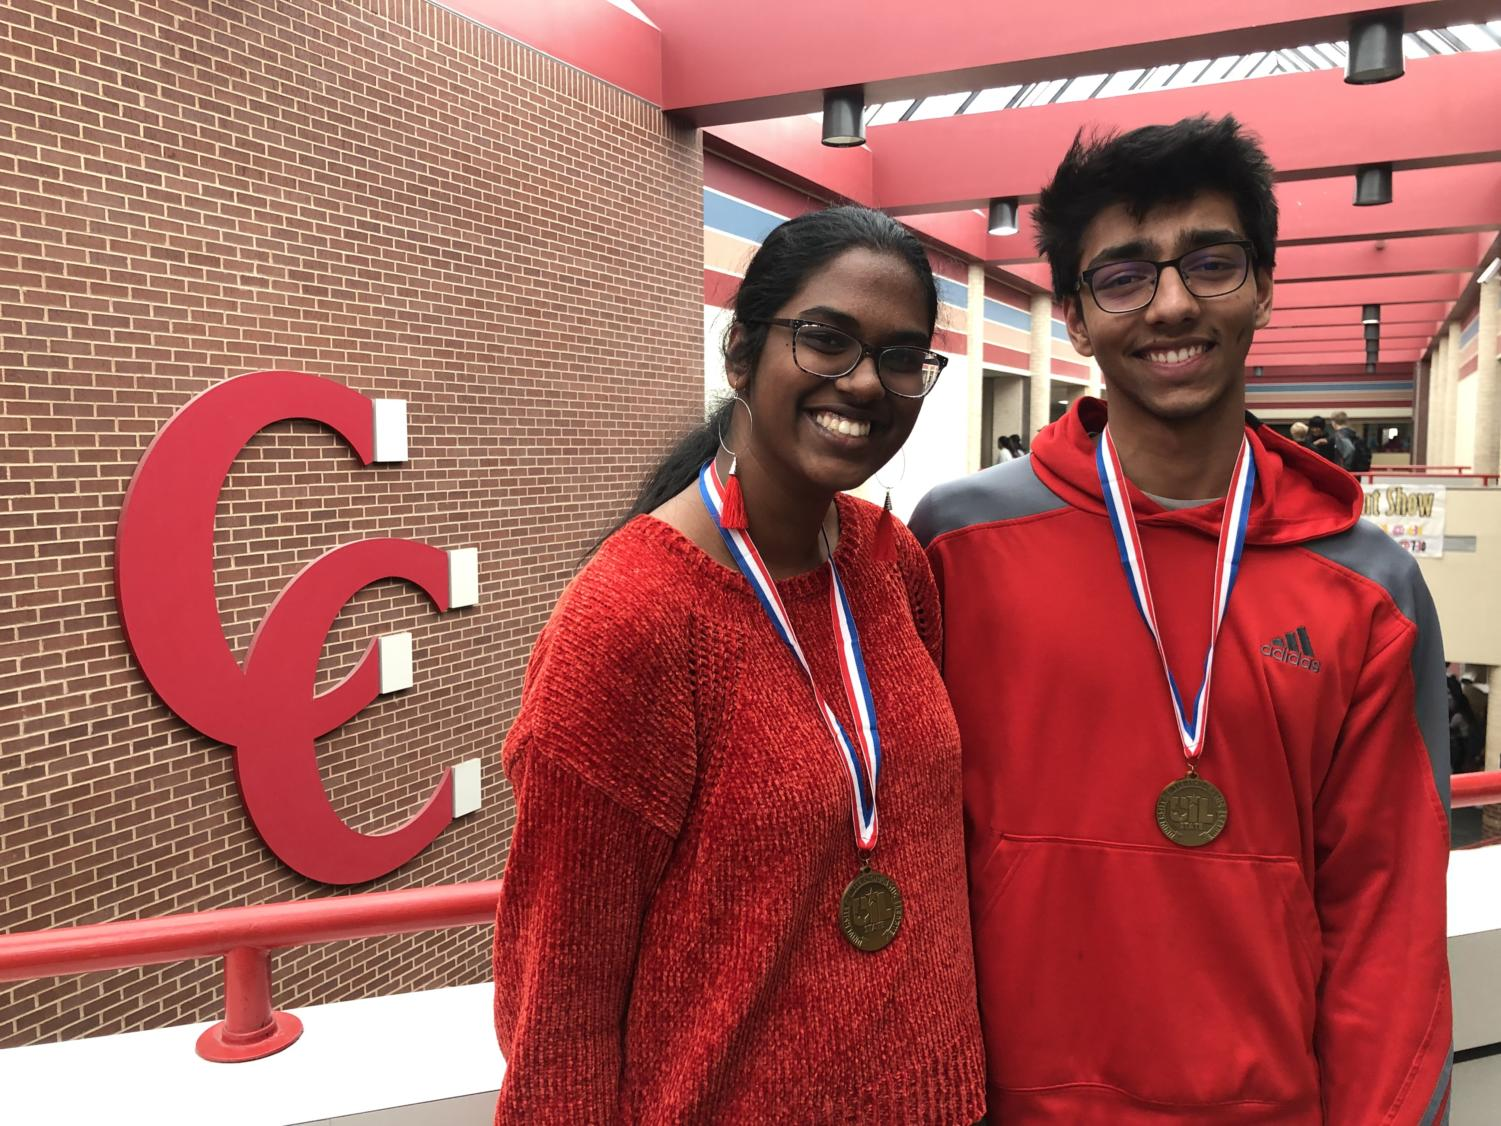 Coppell High School senior Jayashree Ganesan and junior Prayaag Gupta participated in the UIL Cross Examination Debate state meet at the University of Texas at Austin on March 23. Ganesan and Gupta reached the quarterfinals while debating whether the U.S. government should reduce its restrictions on legal immigration.